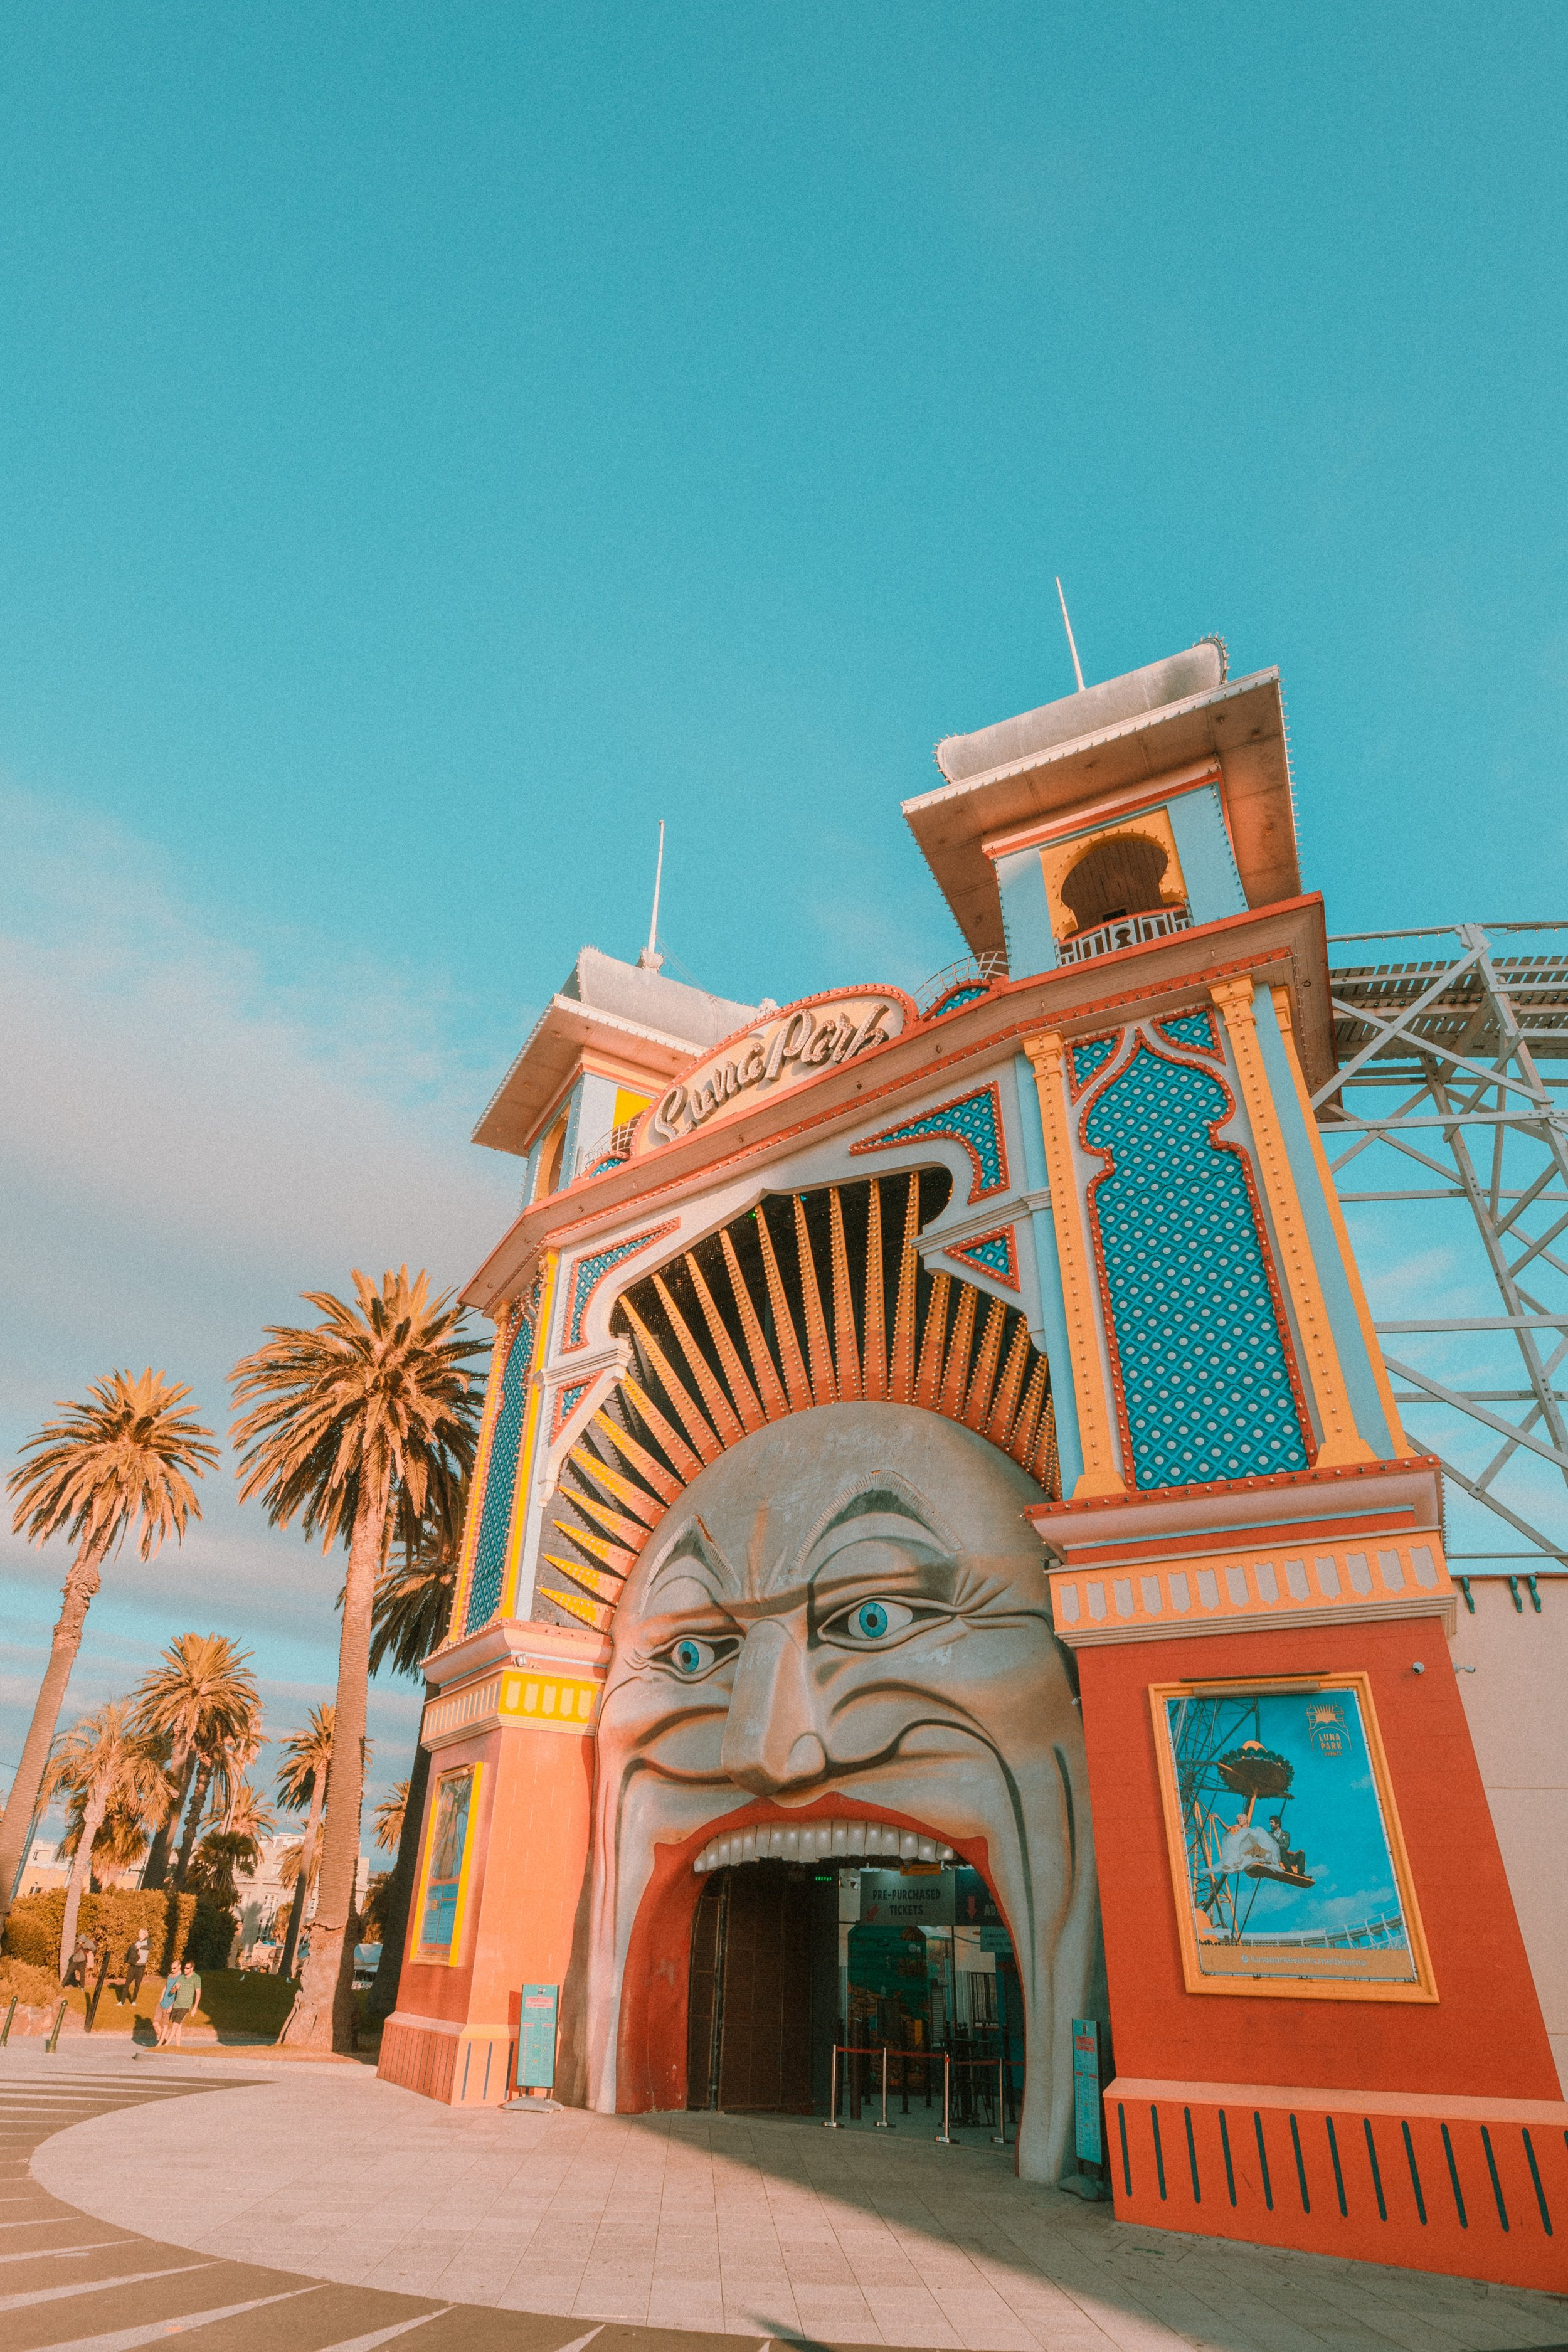 Luna Park in Melbourne is a great place to visit